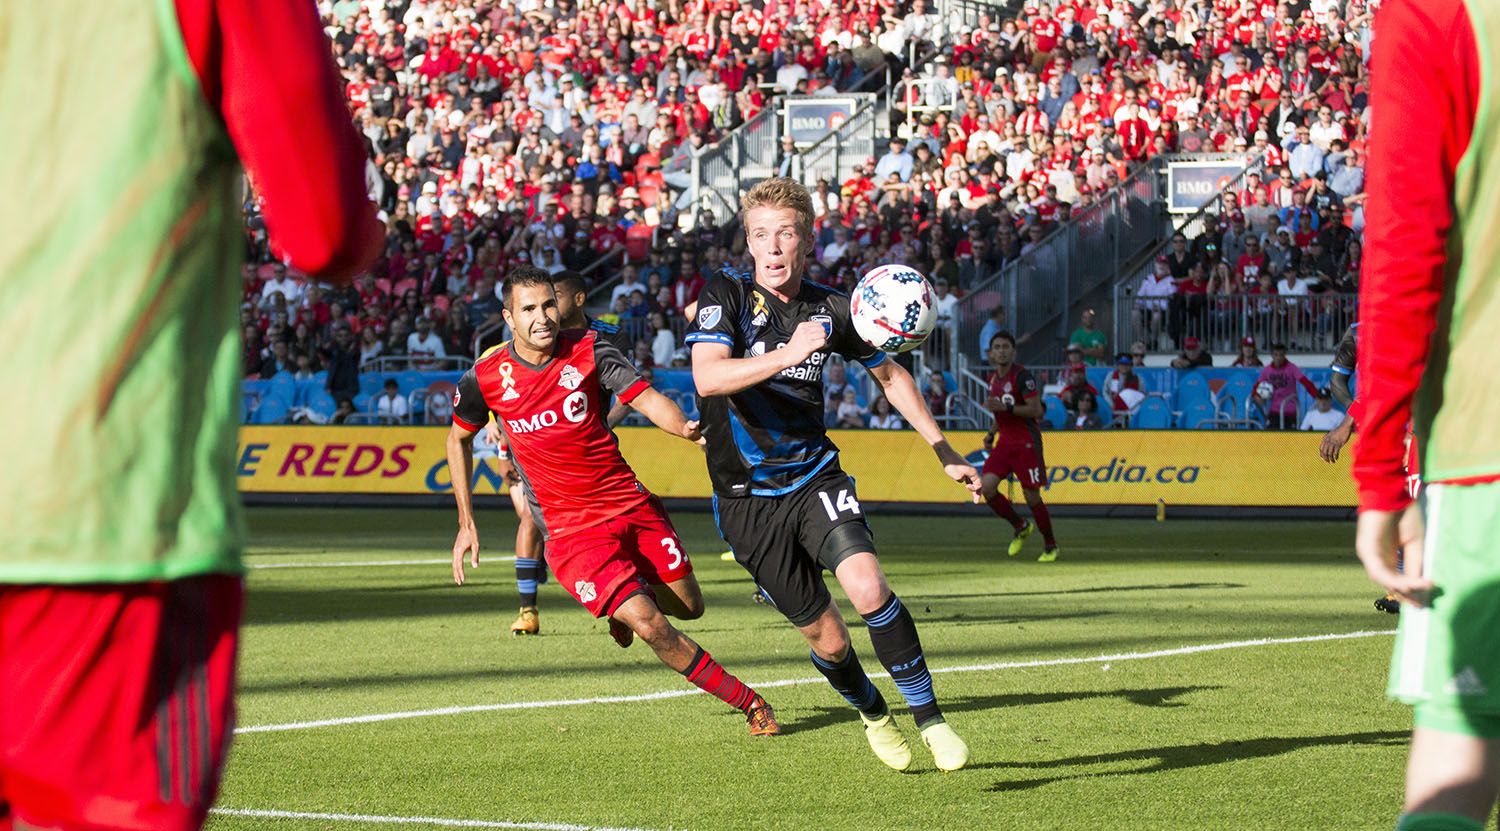 Steven Betiashour trying to get the ball from a defender shot between Toronto FC subsitutues.